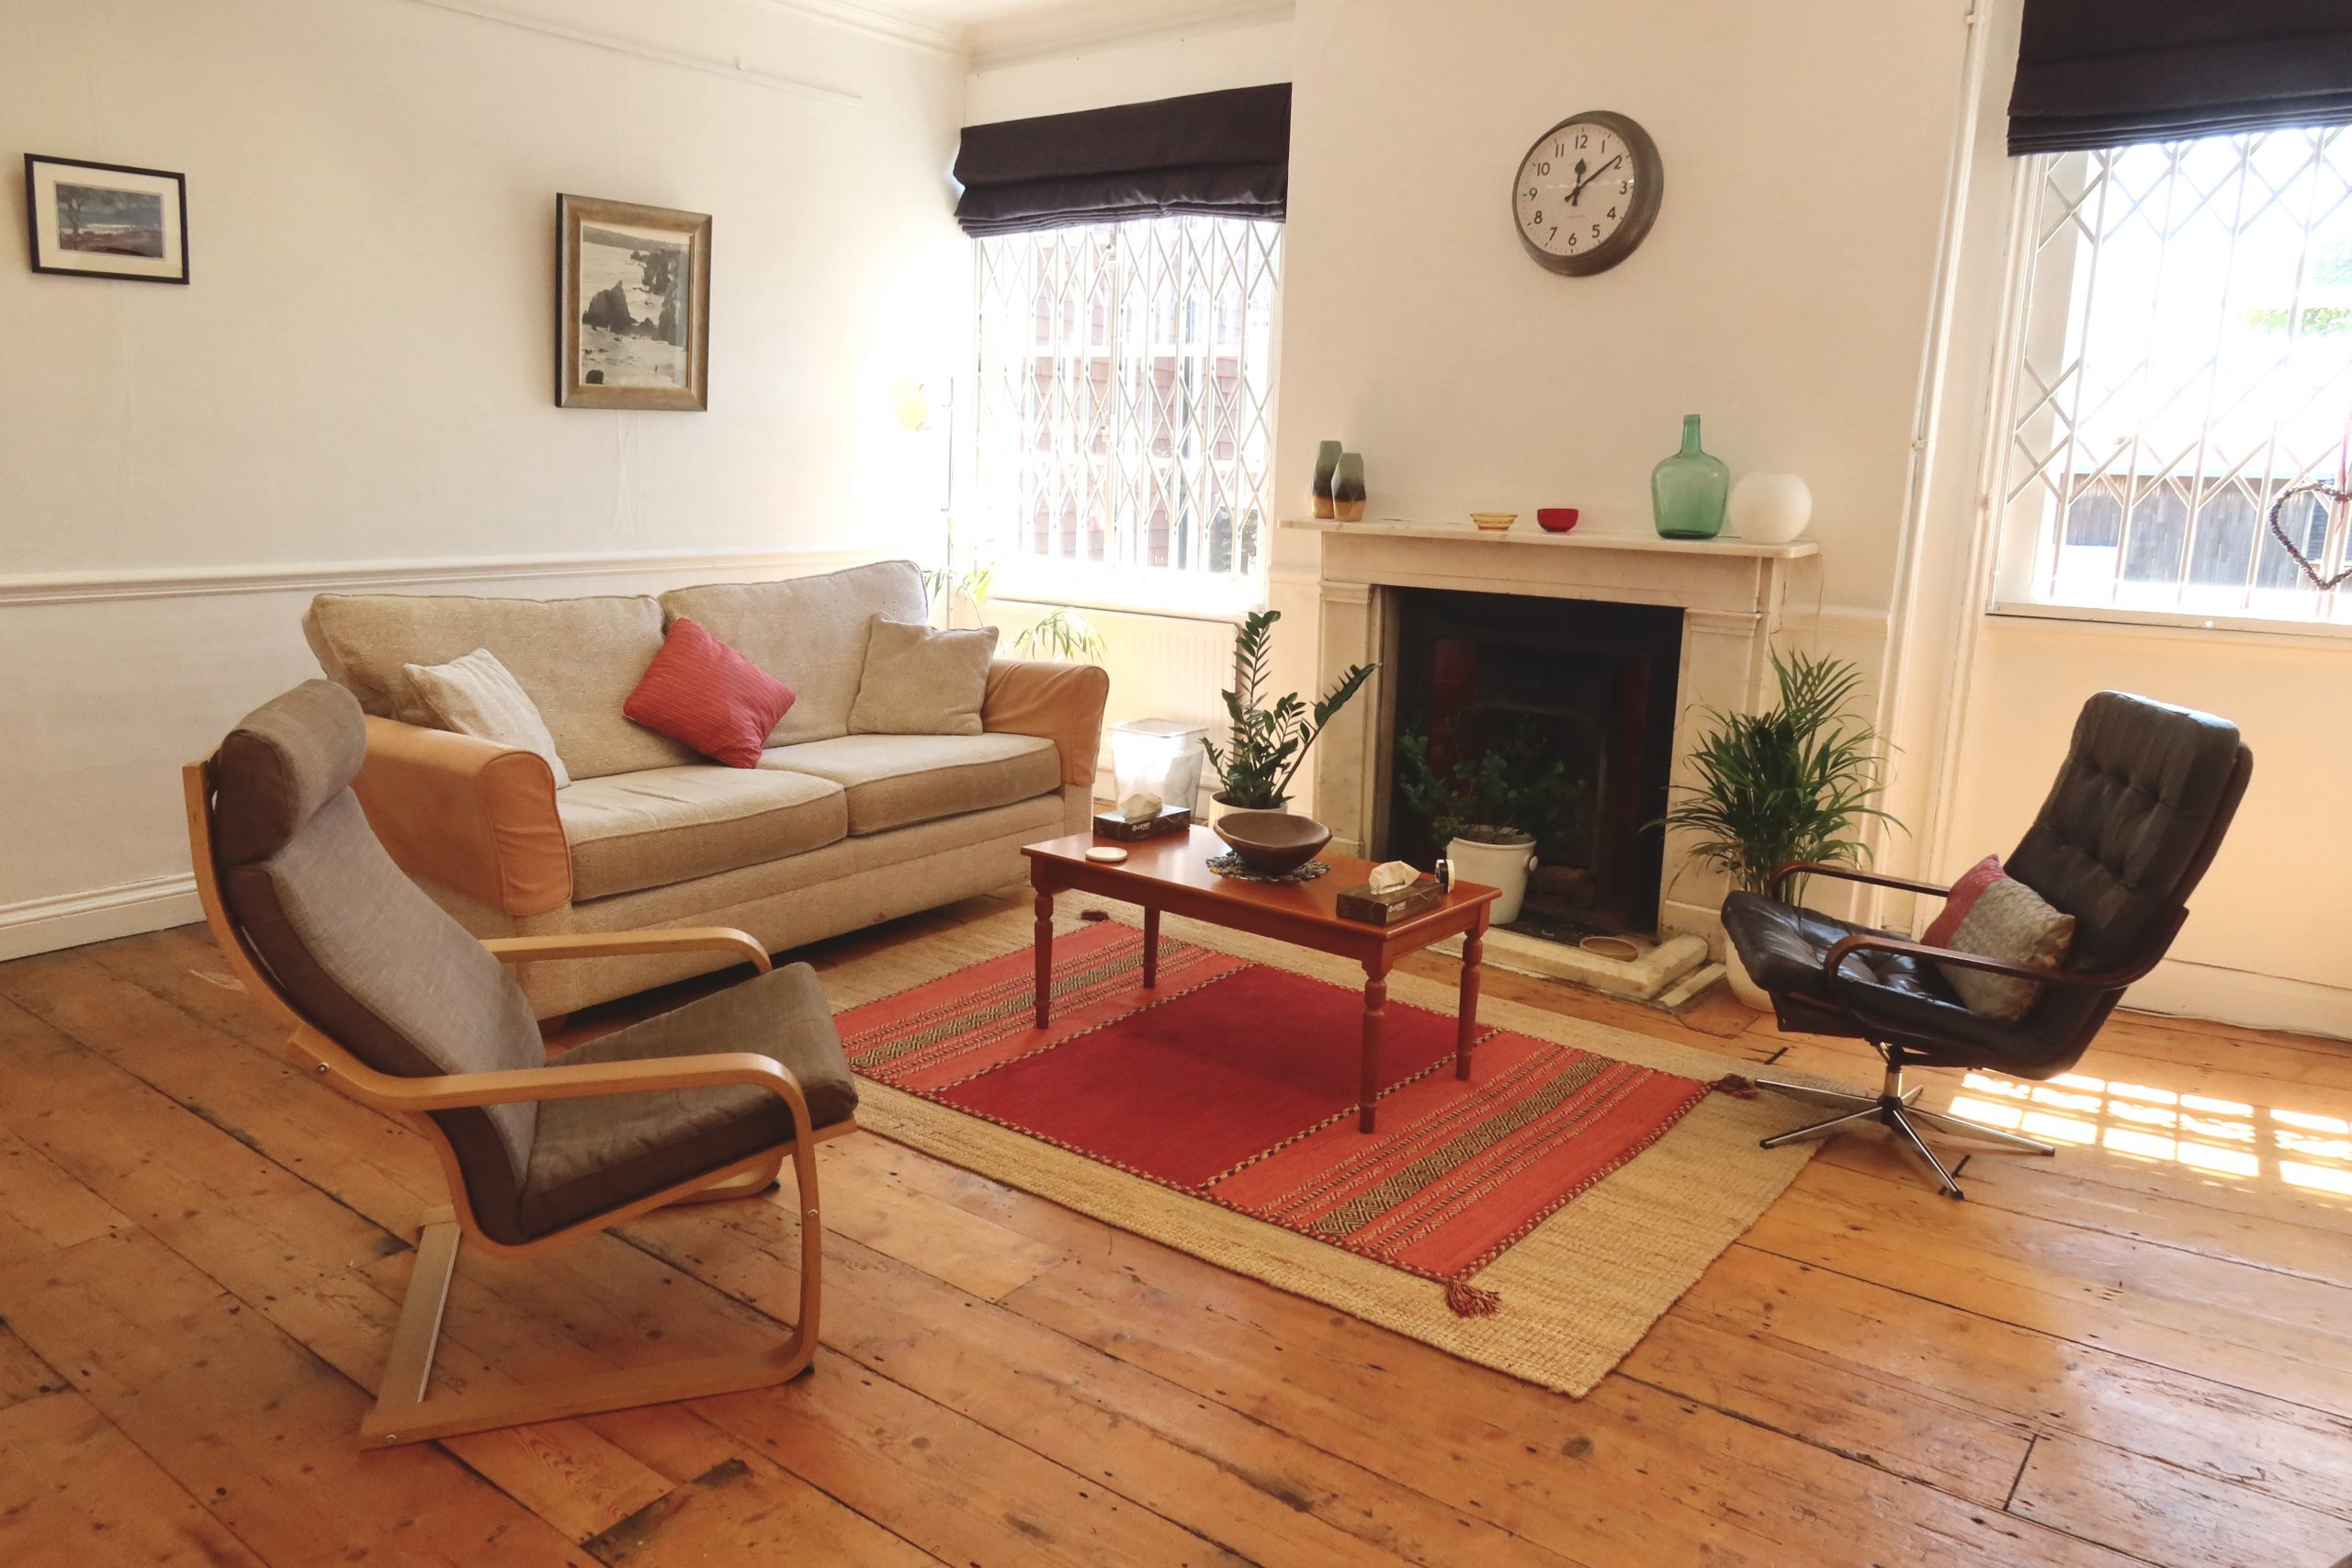 Brighton and Hove Psychotherapy - Lewes office